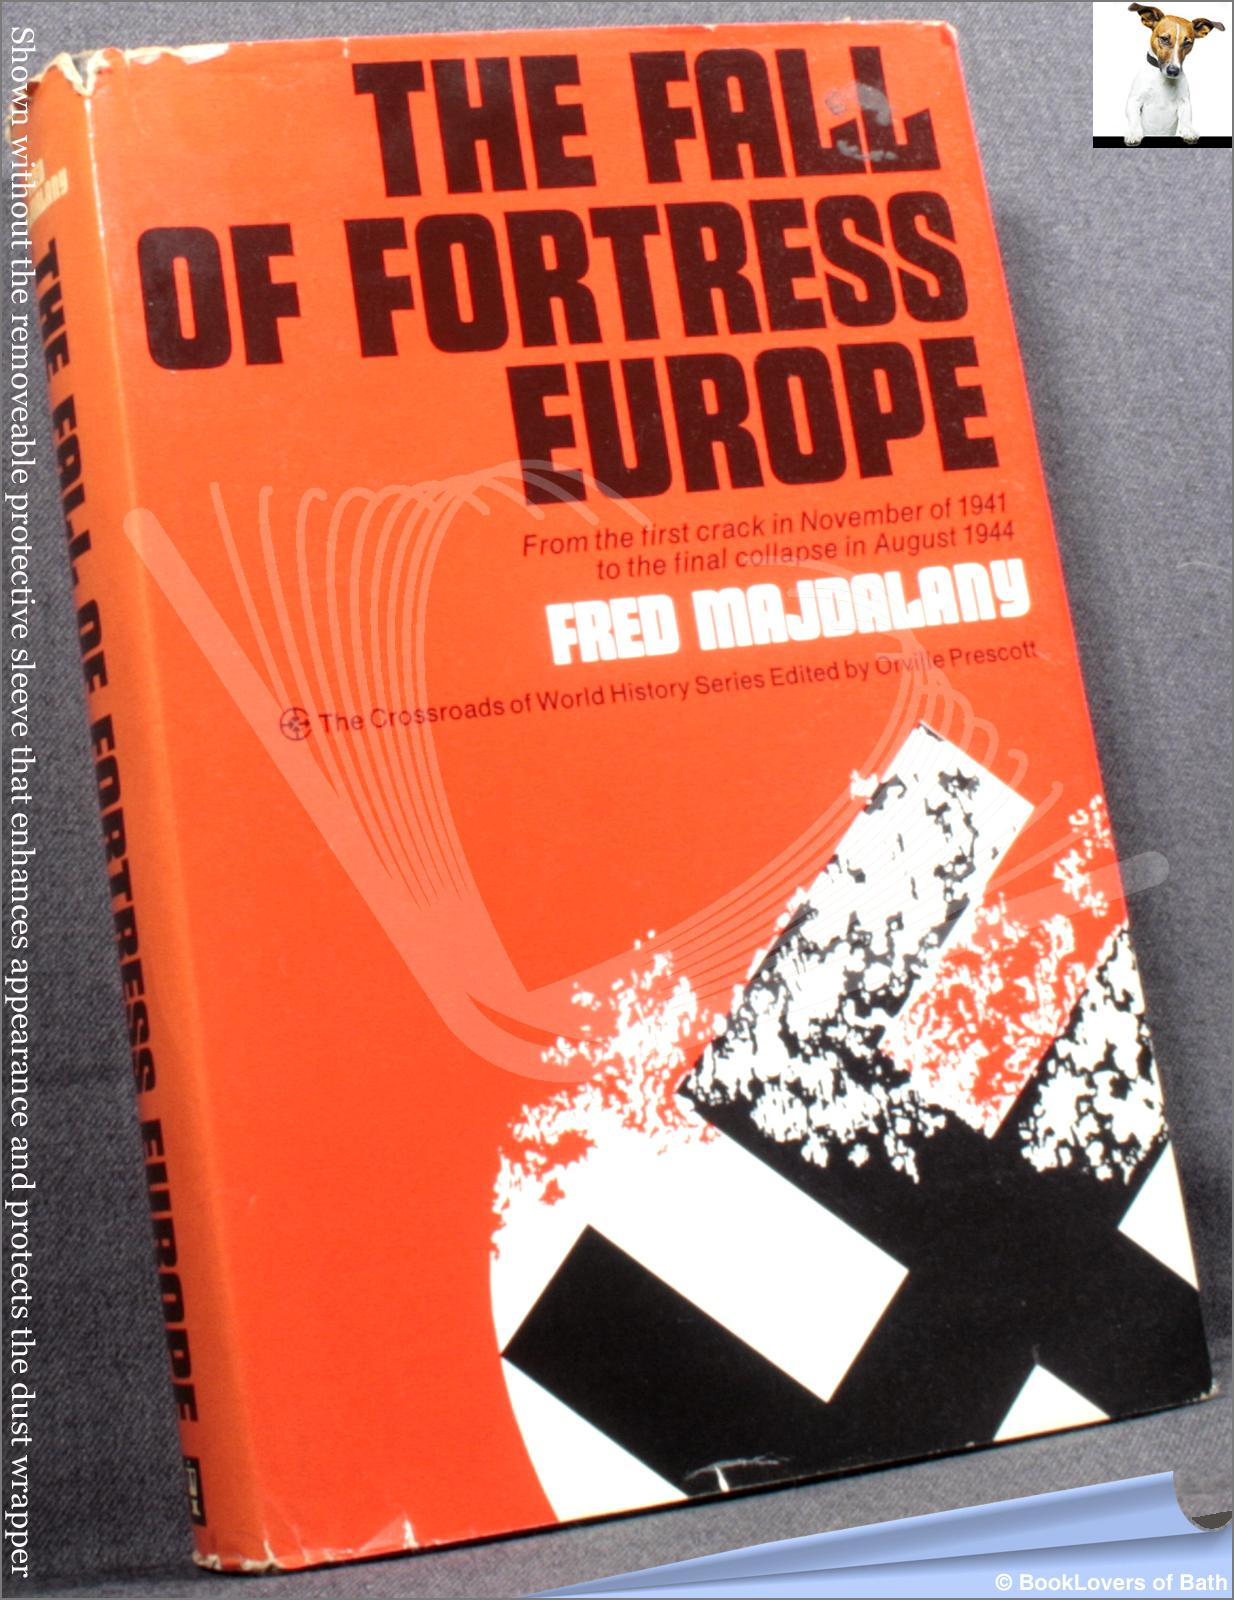 The Fall of Fortress Europe - Fred Majdalany